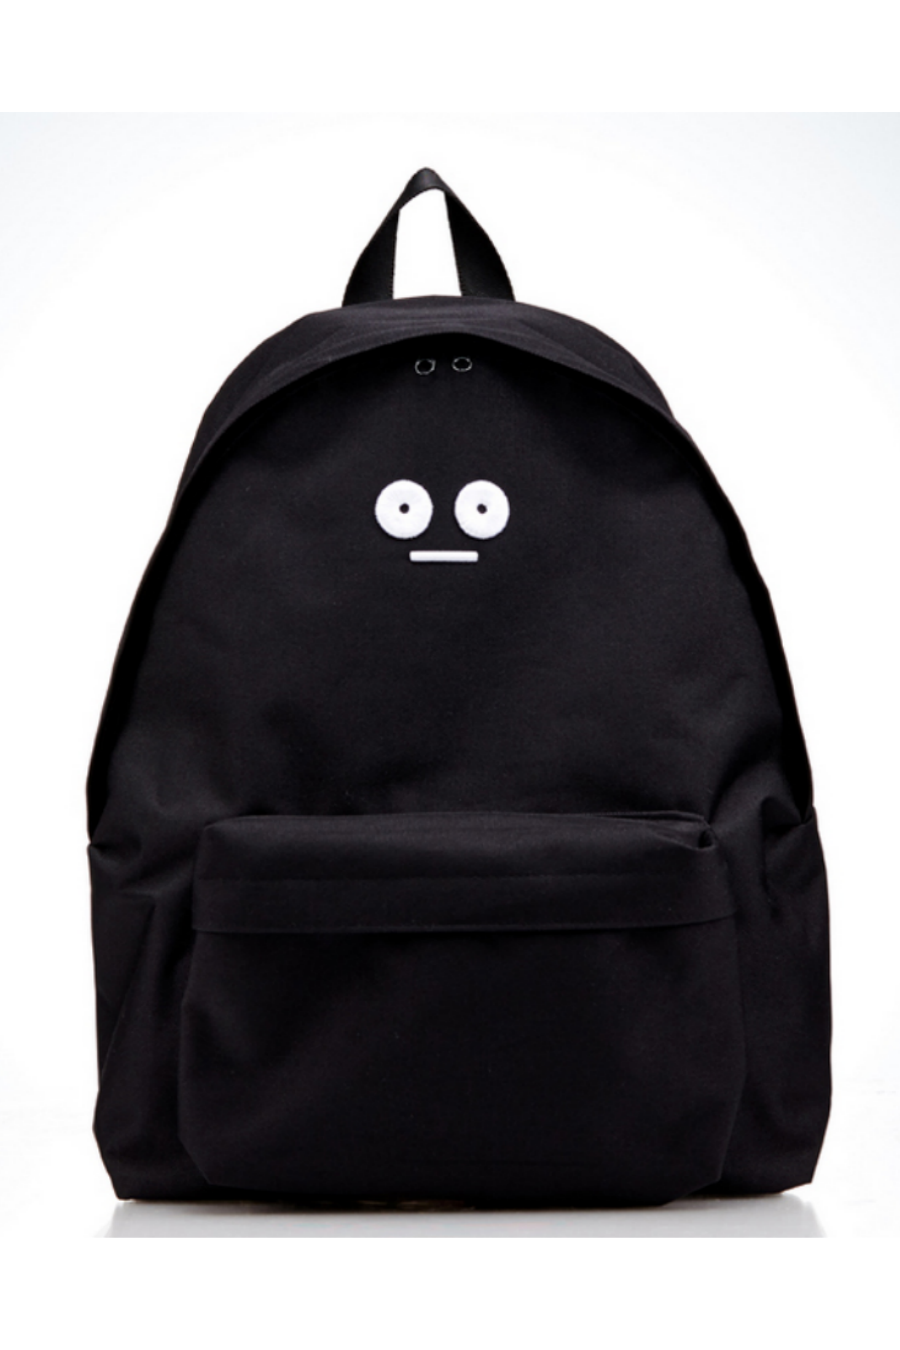 467ad2ef80 Cute Black Cartoon Backpack. Touch to zoom